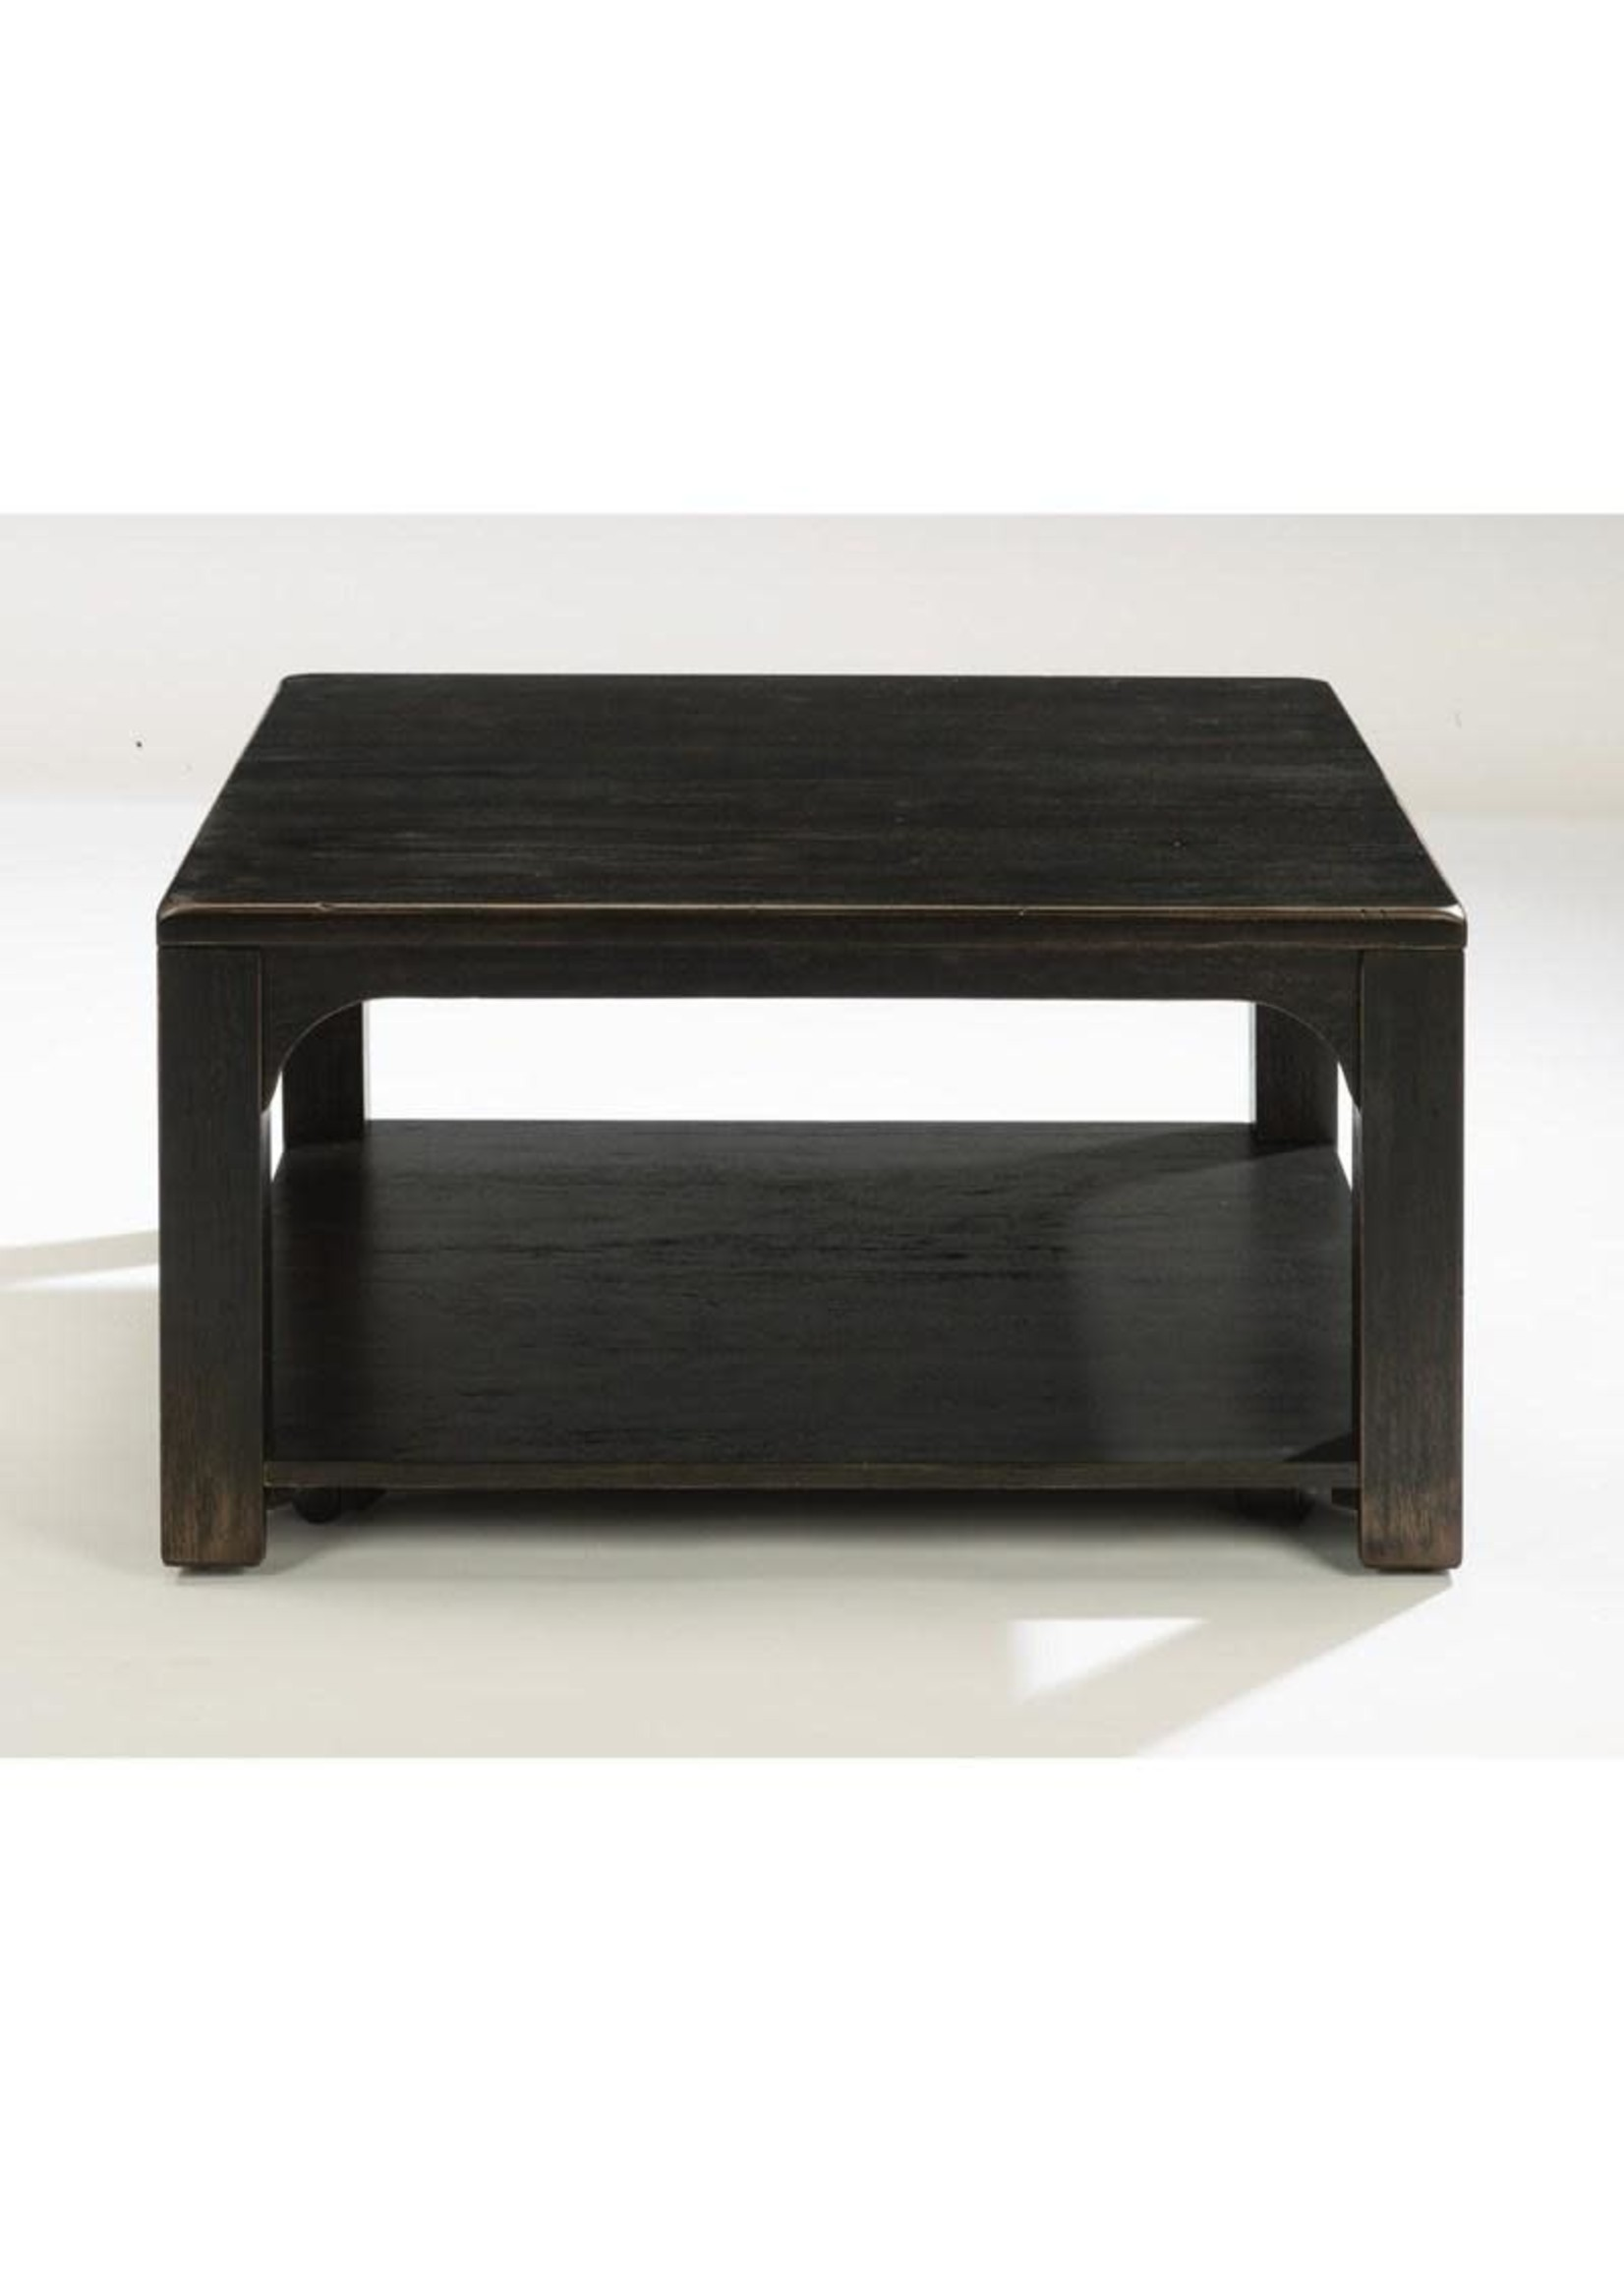 HOMESTEAD SQUARE COCKTAIL TABLE W/CASTERS